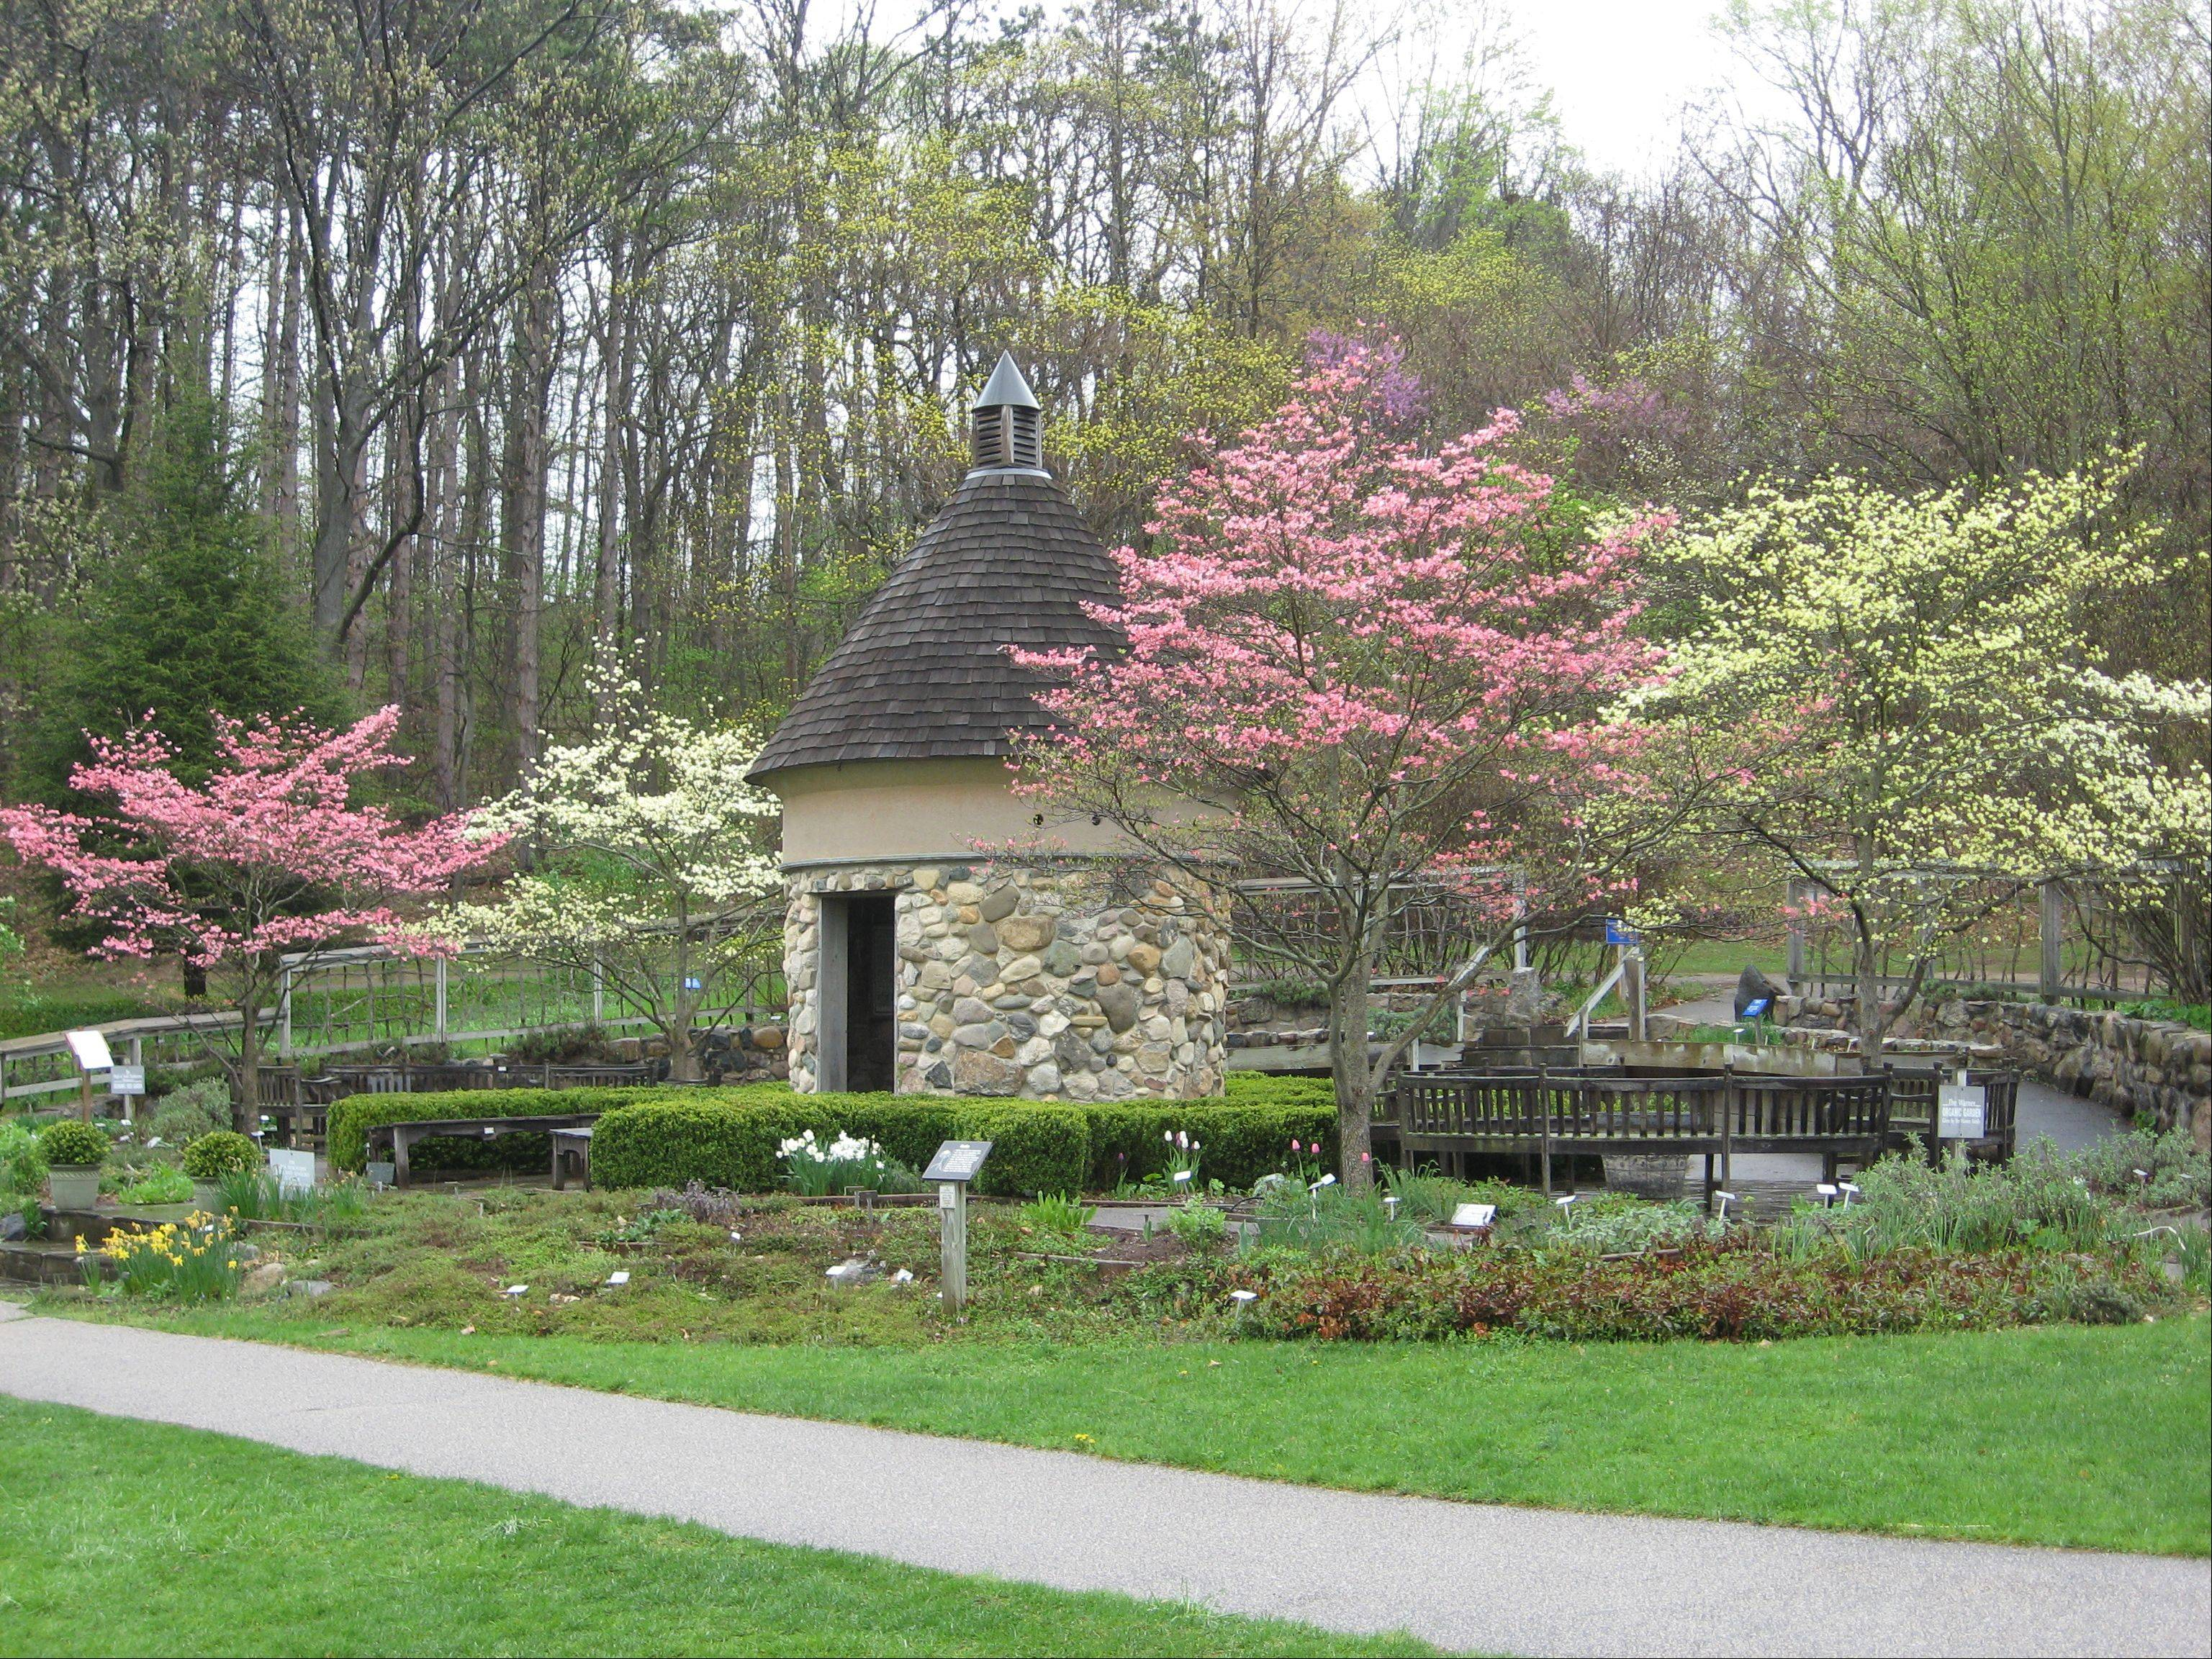 The herb garden at Fernwood Botanical Garden & Nature Preserve in Niles, Mich., is well-worth a visit.